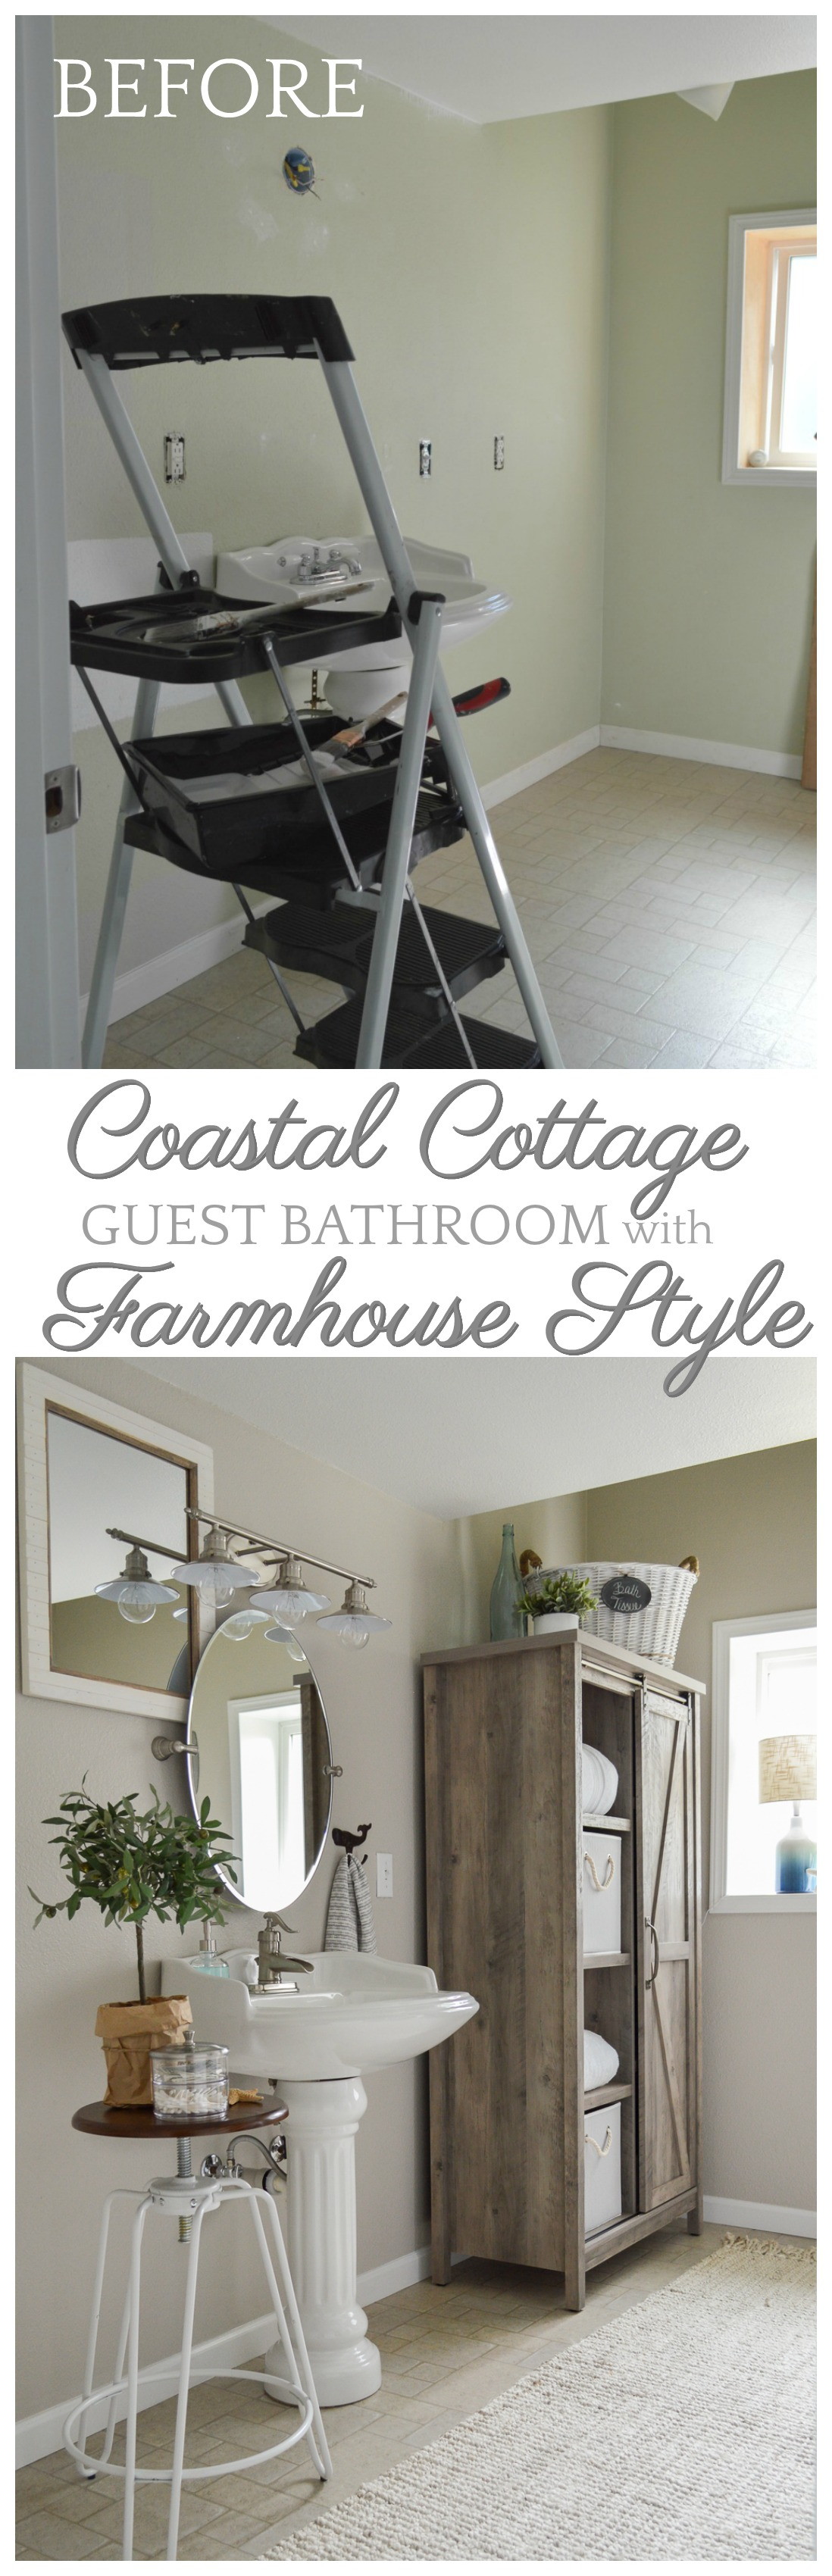 Painting Bathroom Tiles Better Homes And Gardens the little cottage bathroom makeover - fox hollow cottage